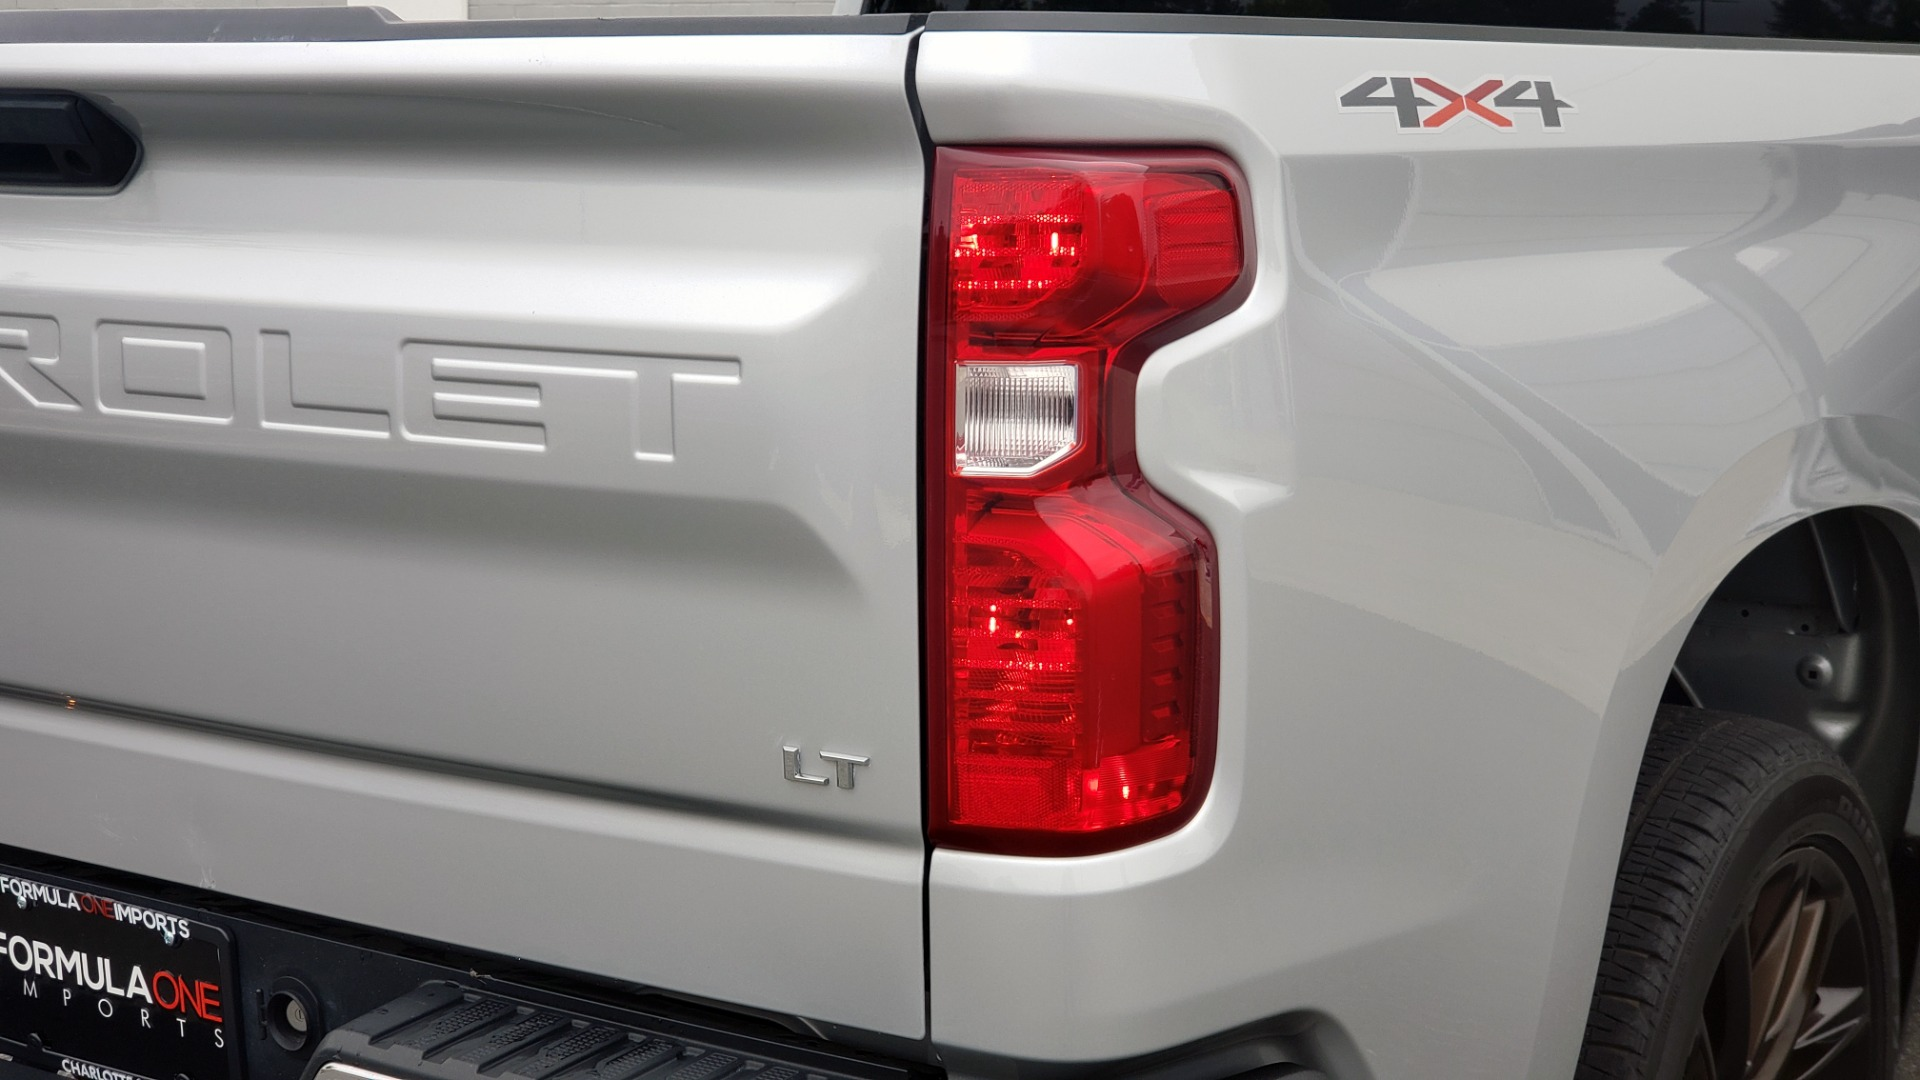 Used 2020 Chevrolet SILVERADO 1500 LT 4WD DOUBLECAB 147 WB / 5.3L V8 / BEDLINER / REARVIEW for sale $41,995 at Formula Imports in Charlotte NC 28227 28